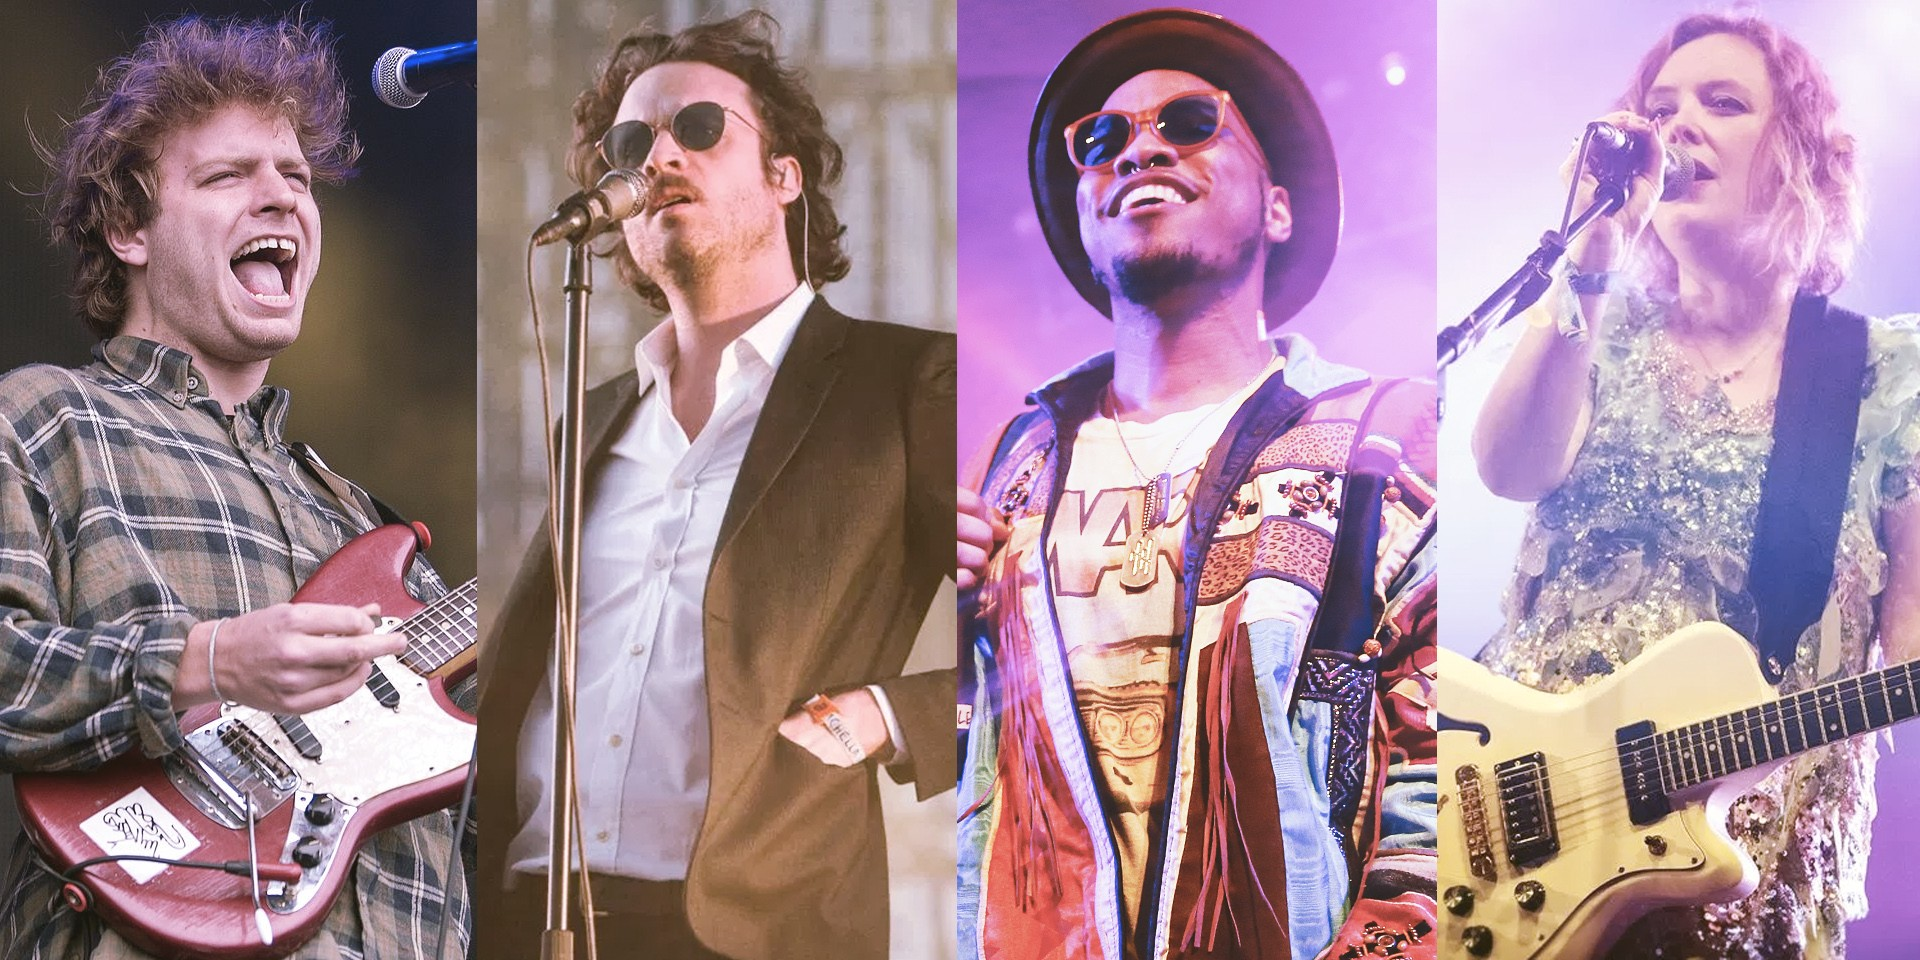 Laneway Festival Singapore 2018: line-up includes Mac DeMarco, Slowdive, Father John Misty, Anderson .Paak, more